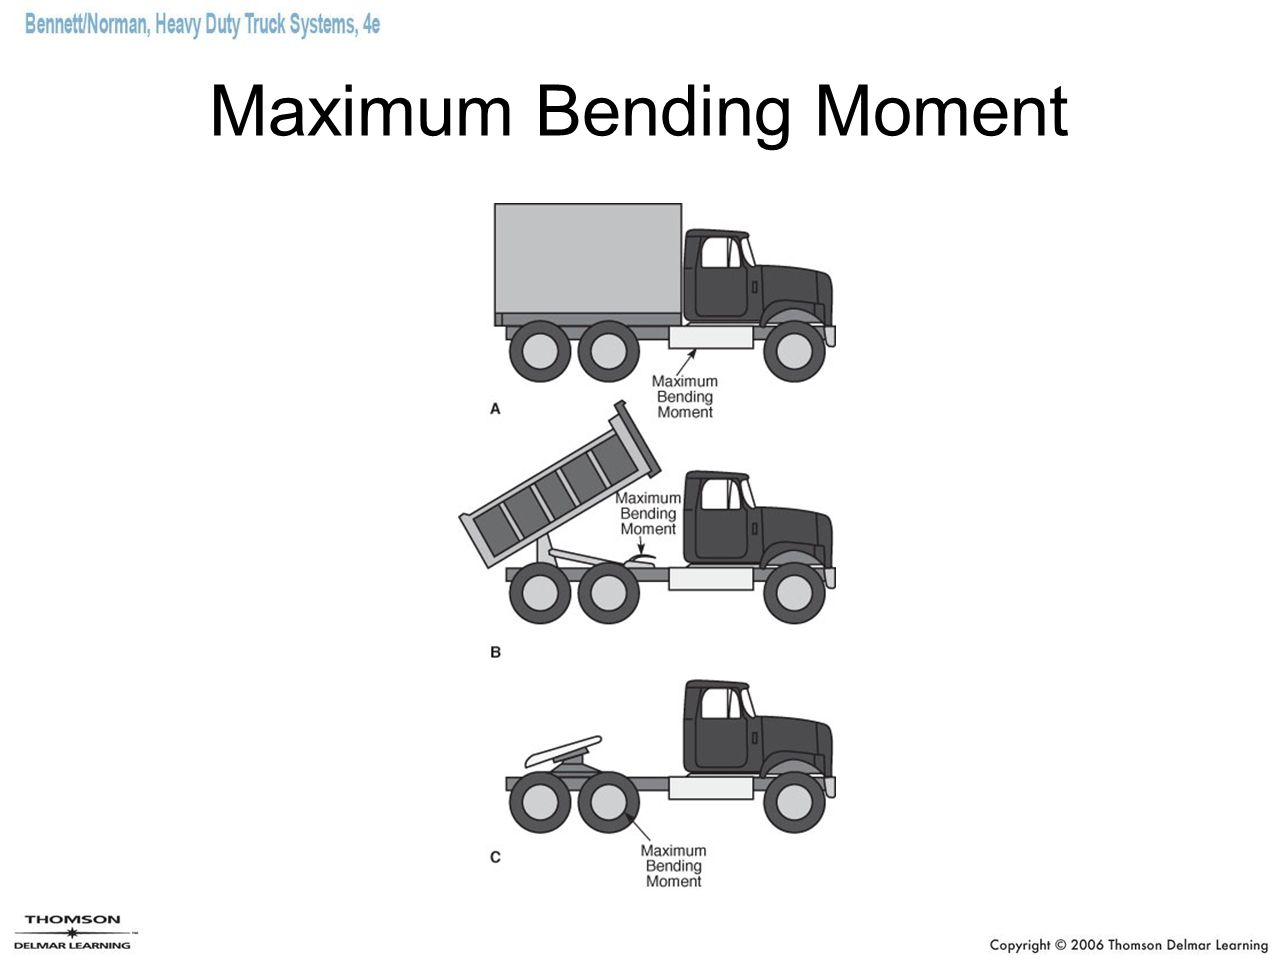 Maximum Bending Moment